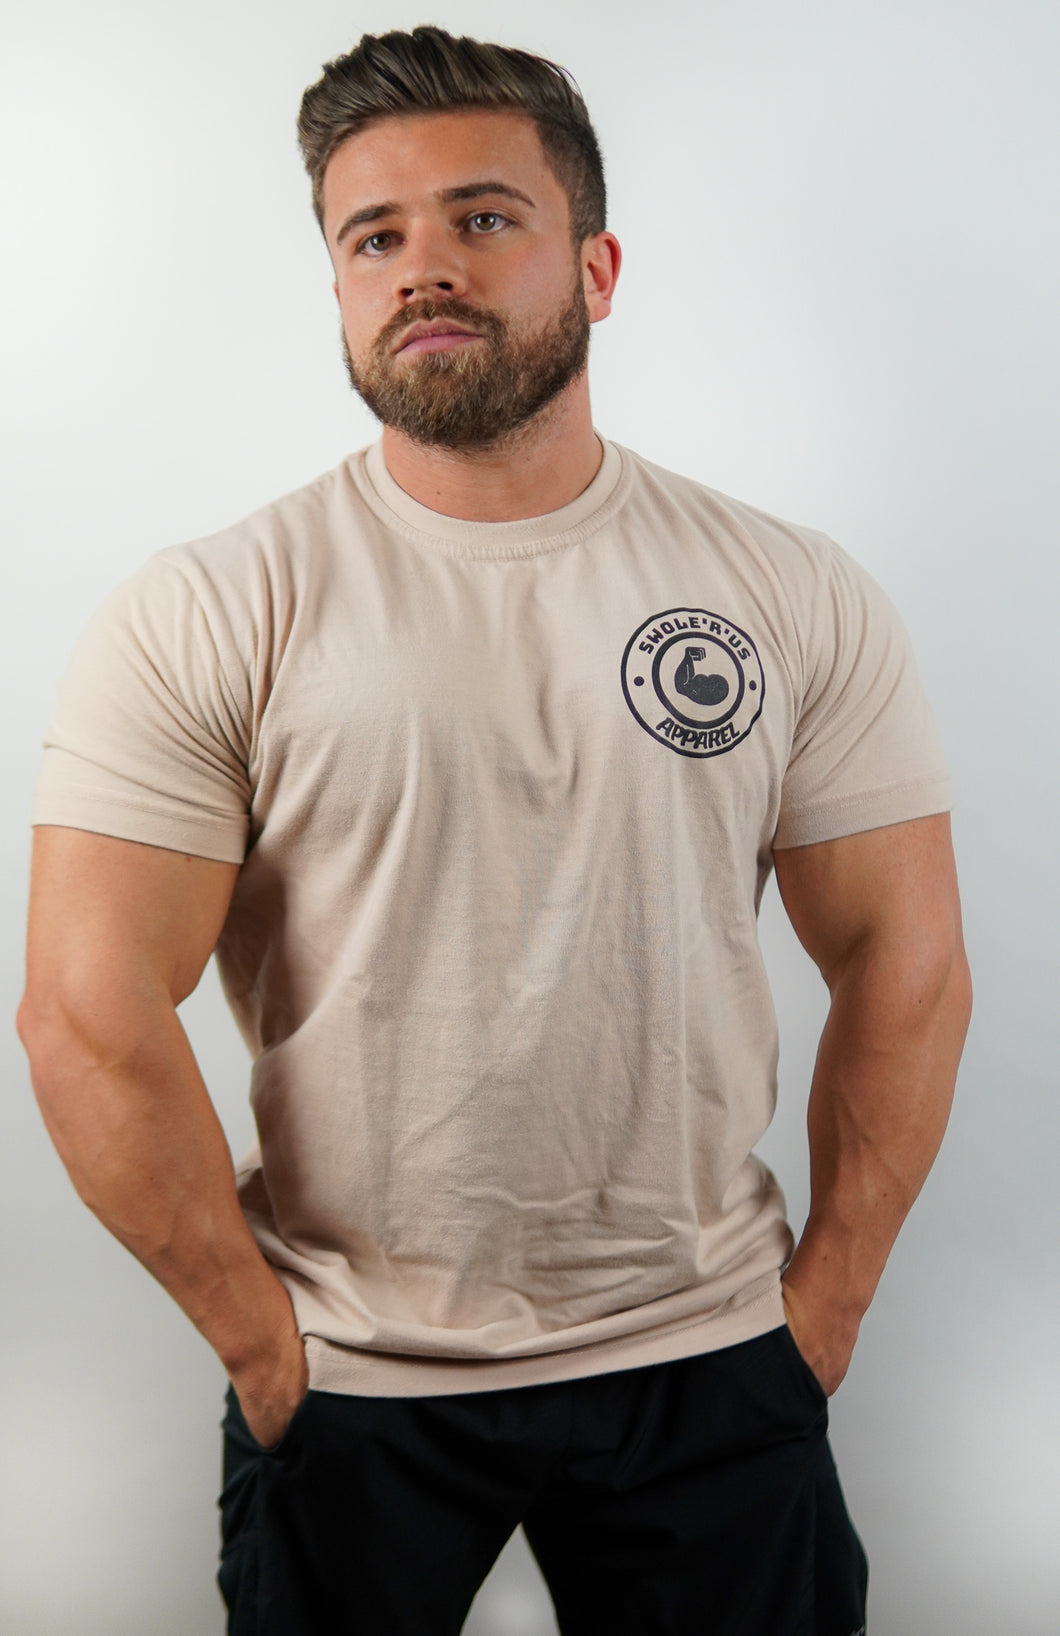 Protein Wheysted Premium Tee